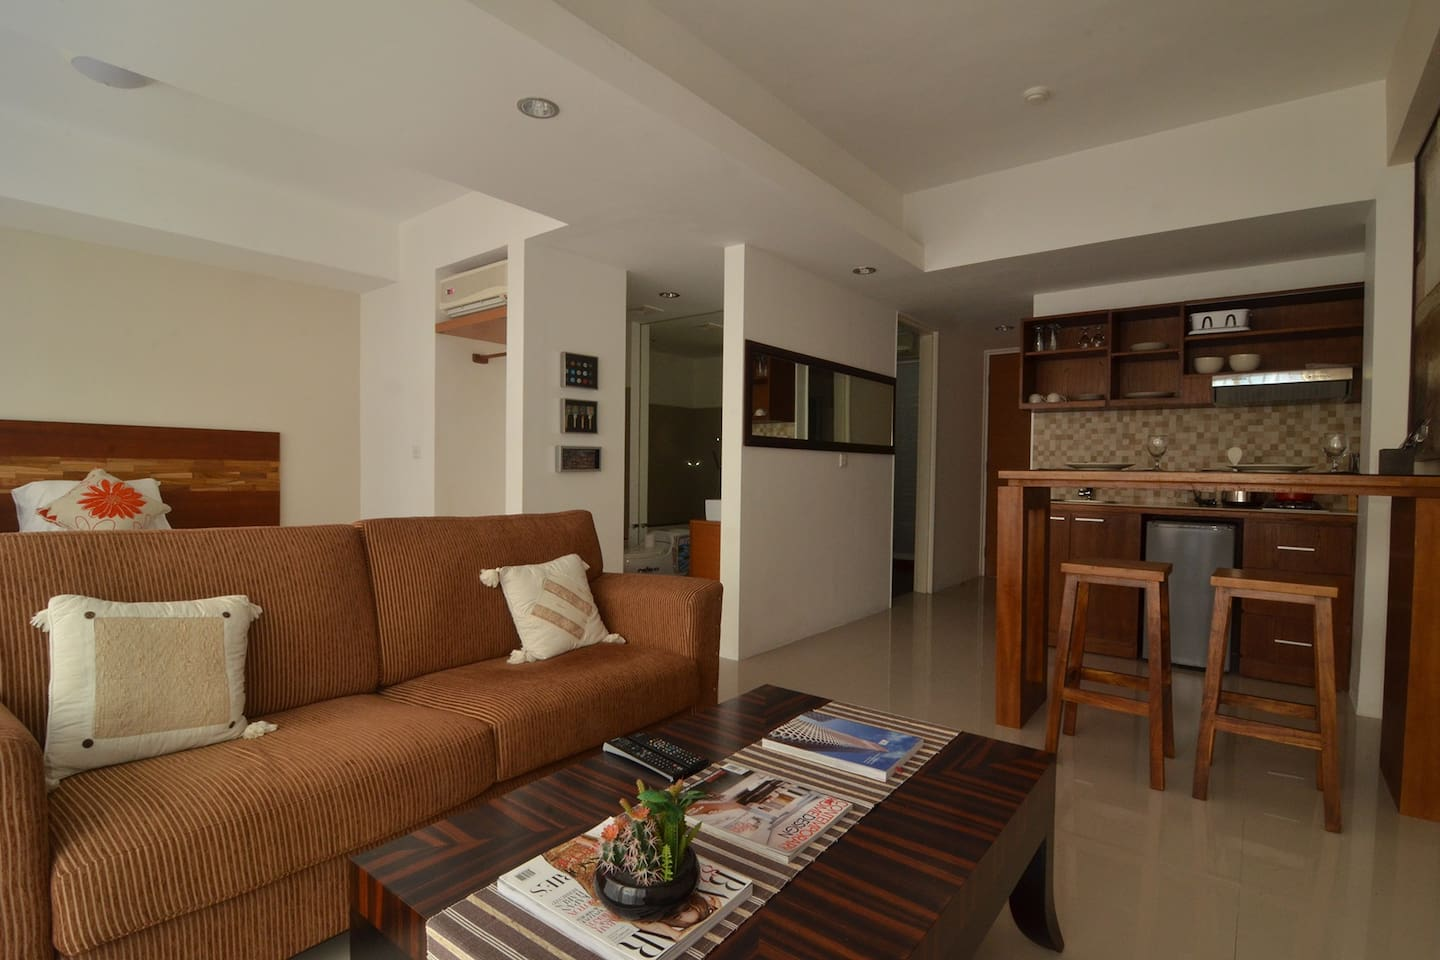 Living room, kitchen and bedroom is all an open space. The doorless bathroom is located next to the bedroom.